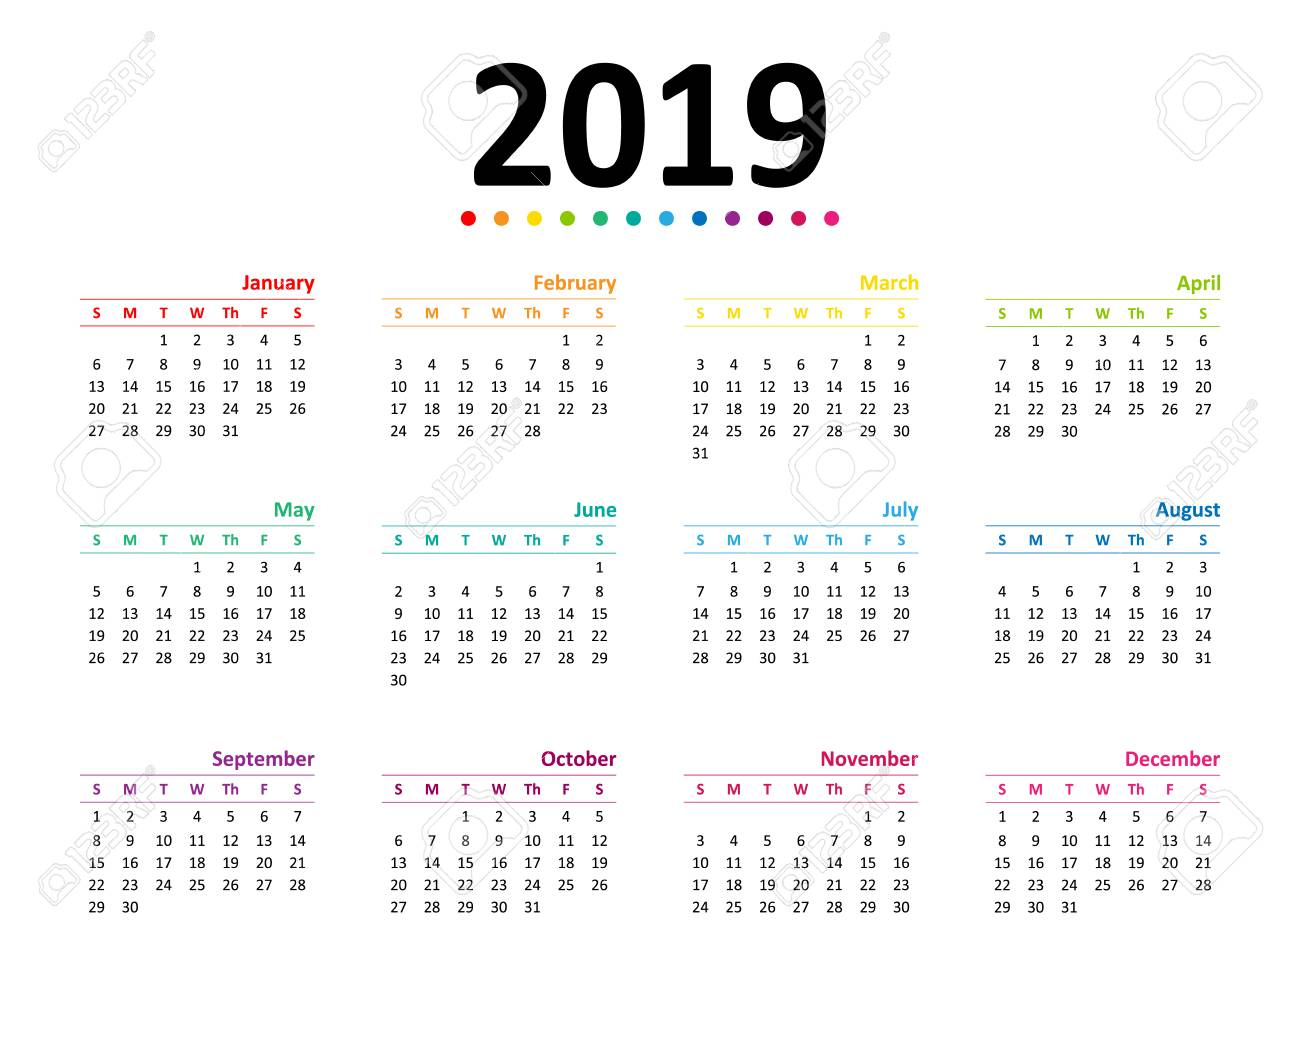 Year 2019 Calendar Wallpaper Vector Illustration Royalty 1300x1040